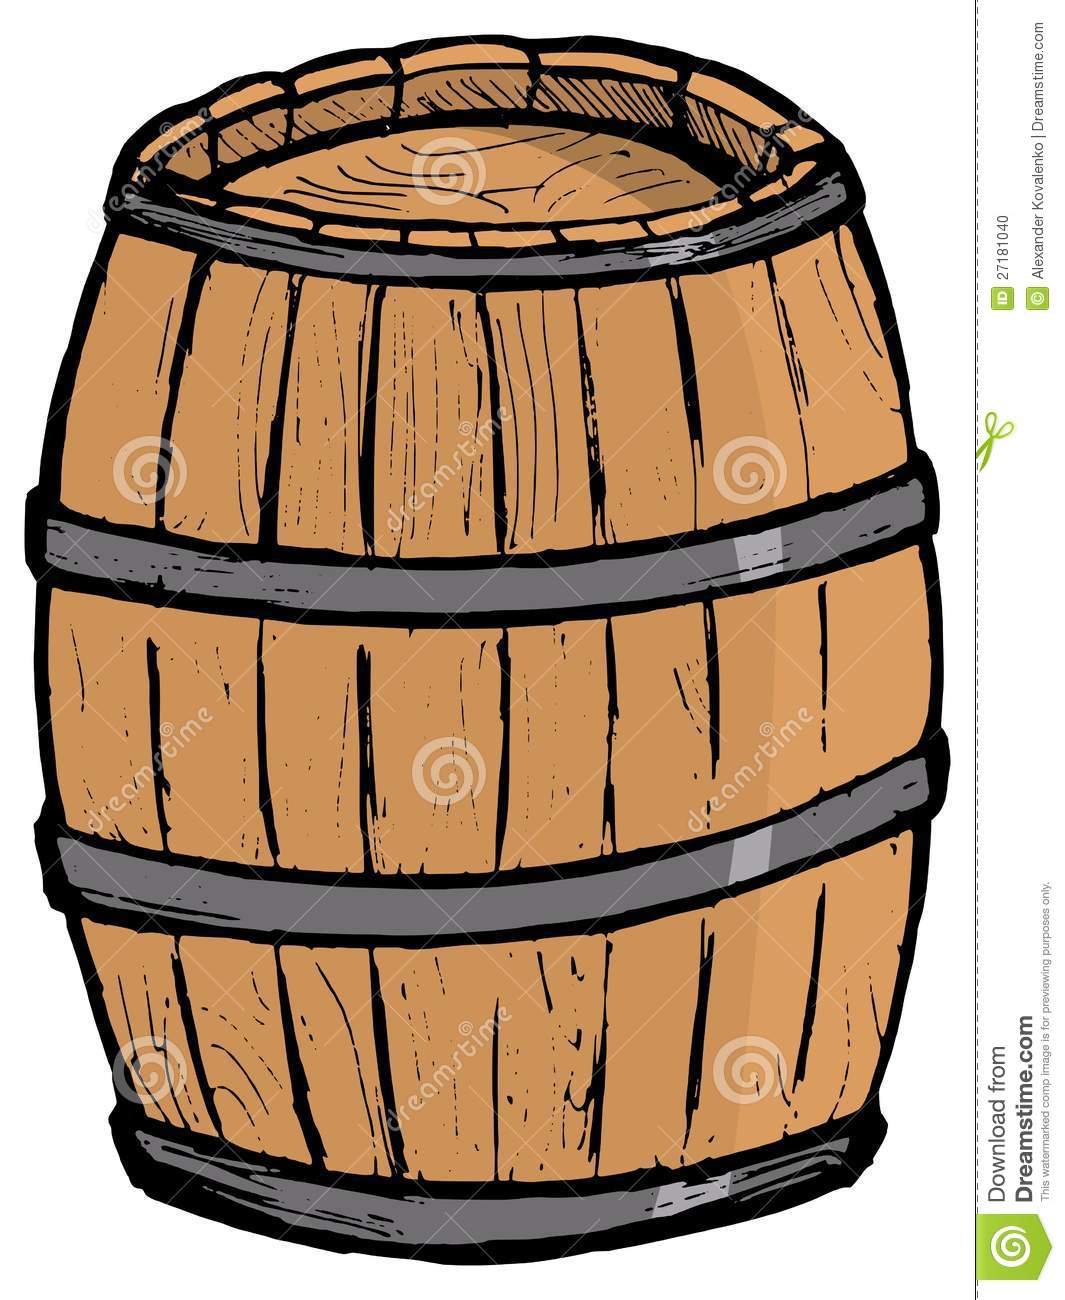 Old wooden barrel stock photo image 27181040 - Tonneau dessin ...